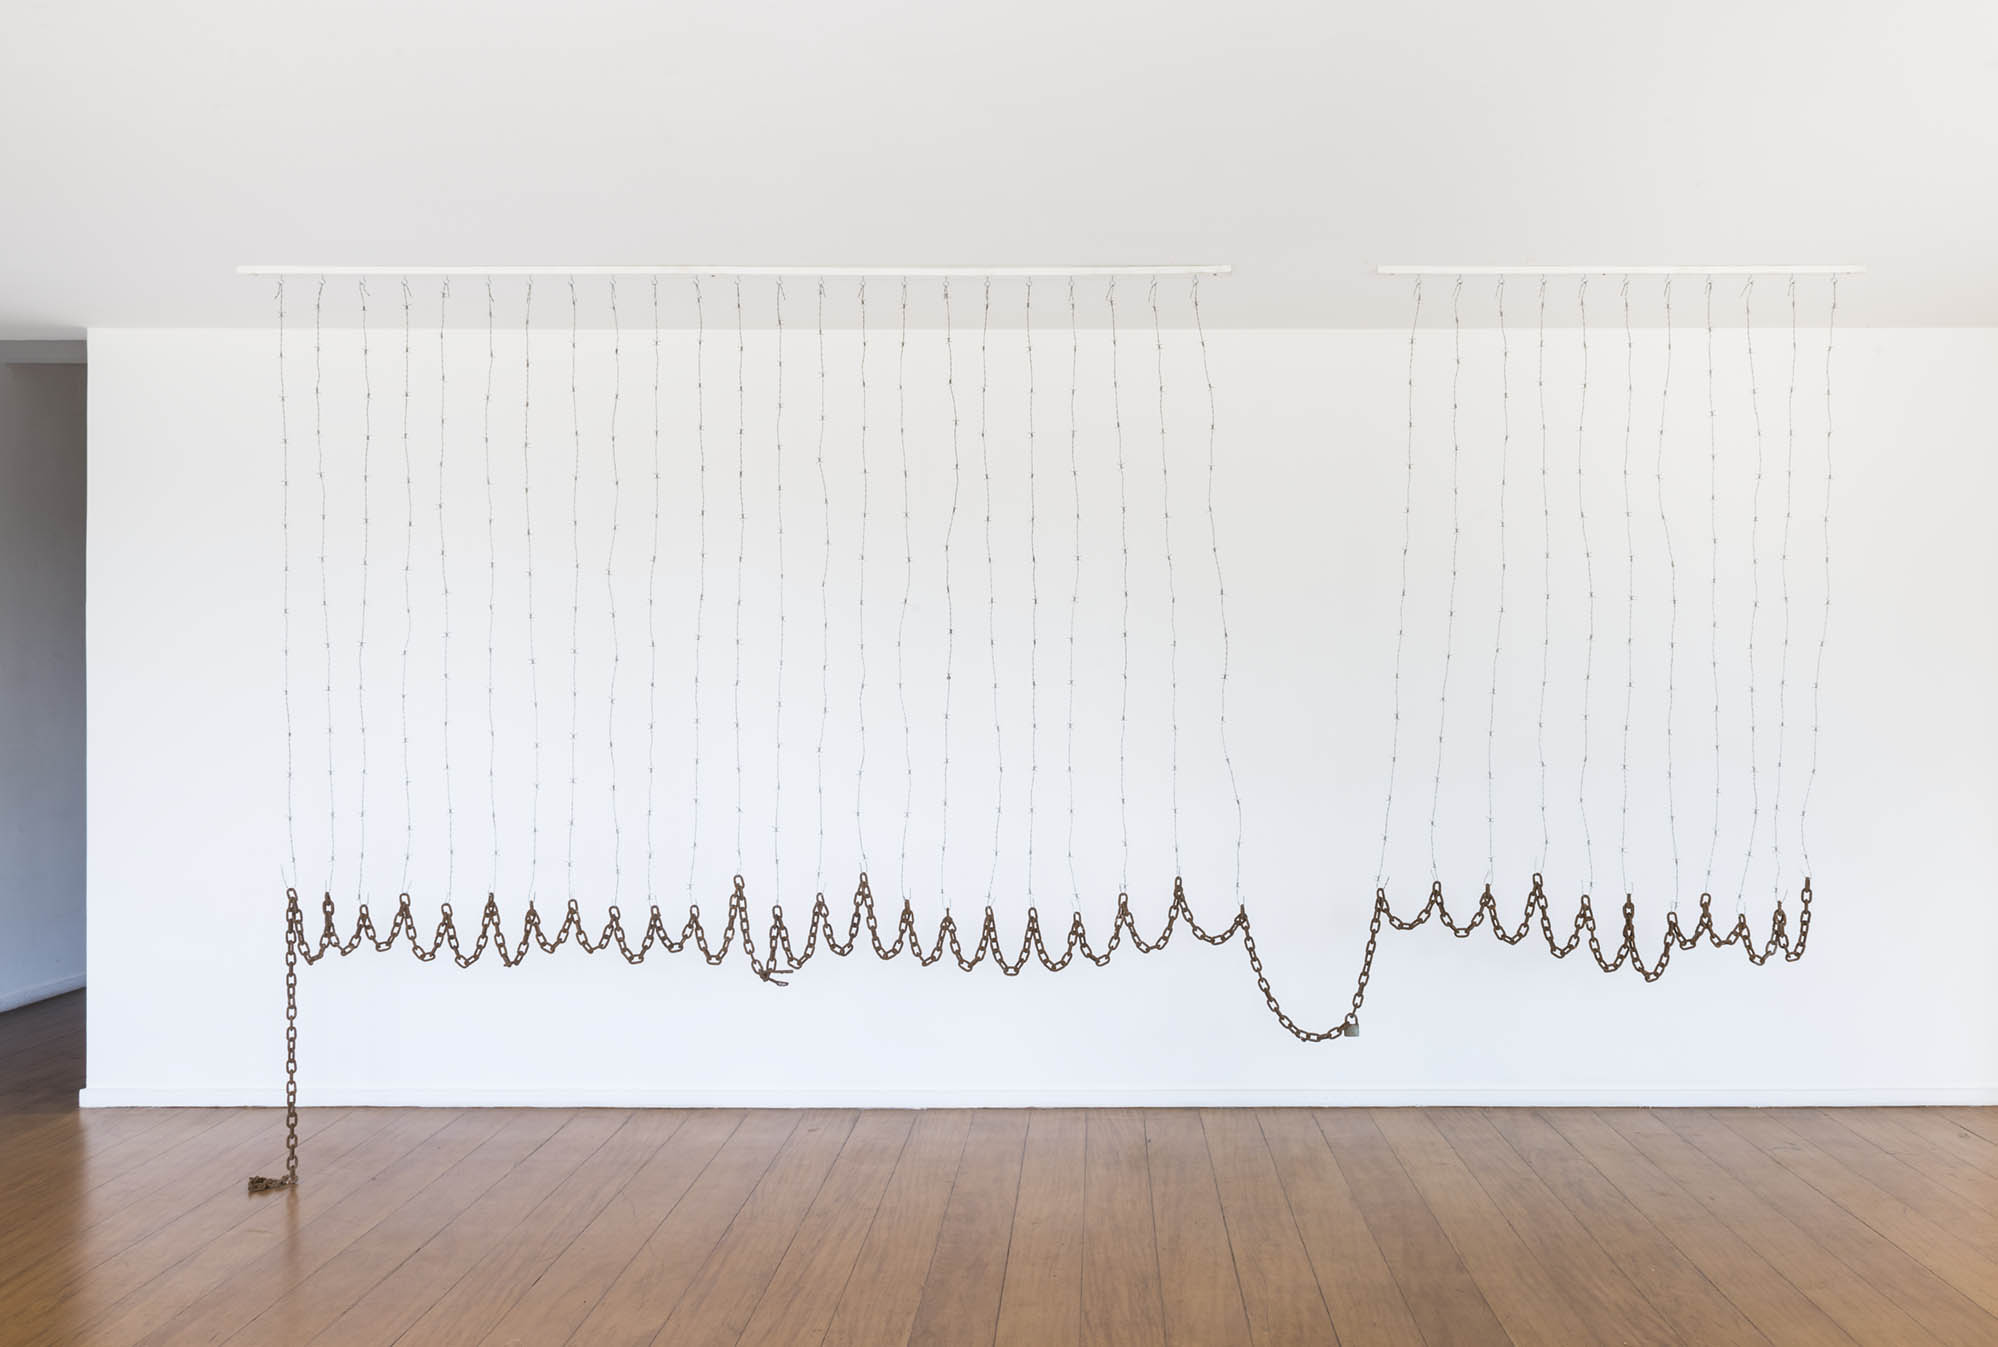 Curtain Calls,  2019  arame farpado e correntes |  barbed wire and chains   280 x 490 cm  | 110 15/64 x 192 29/32